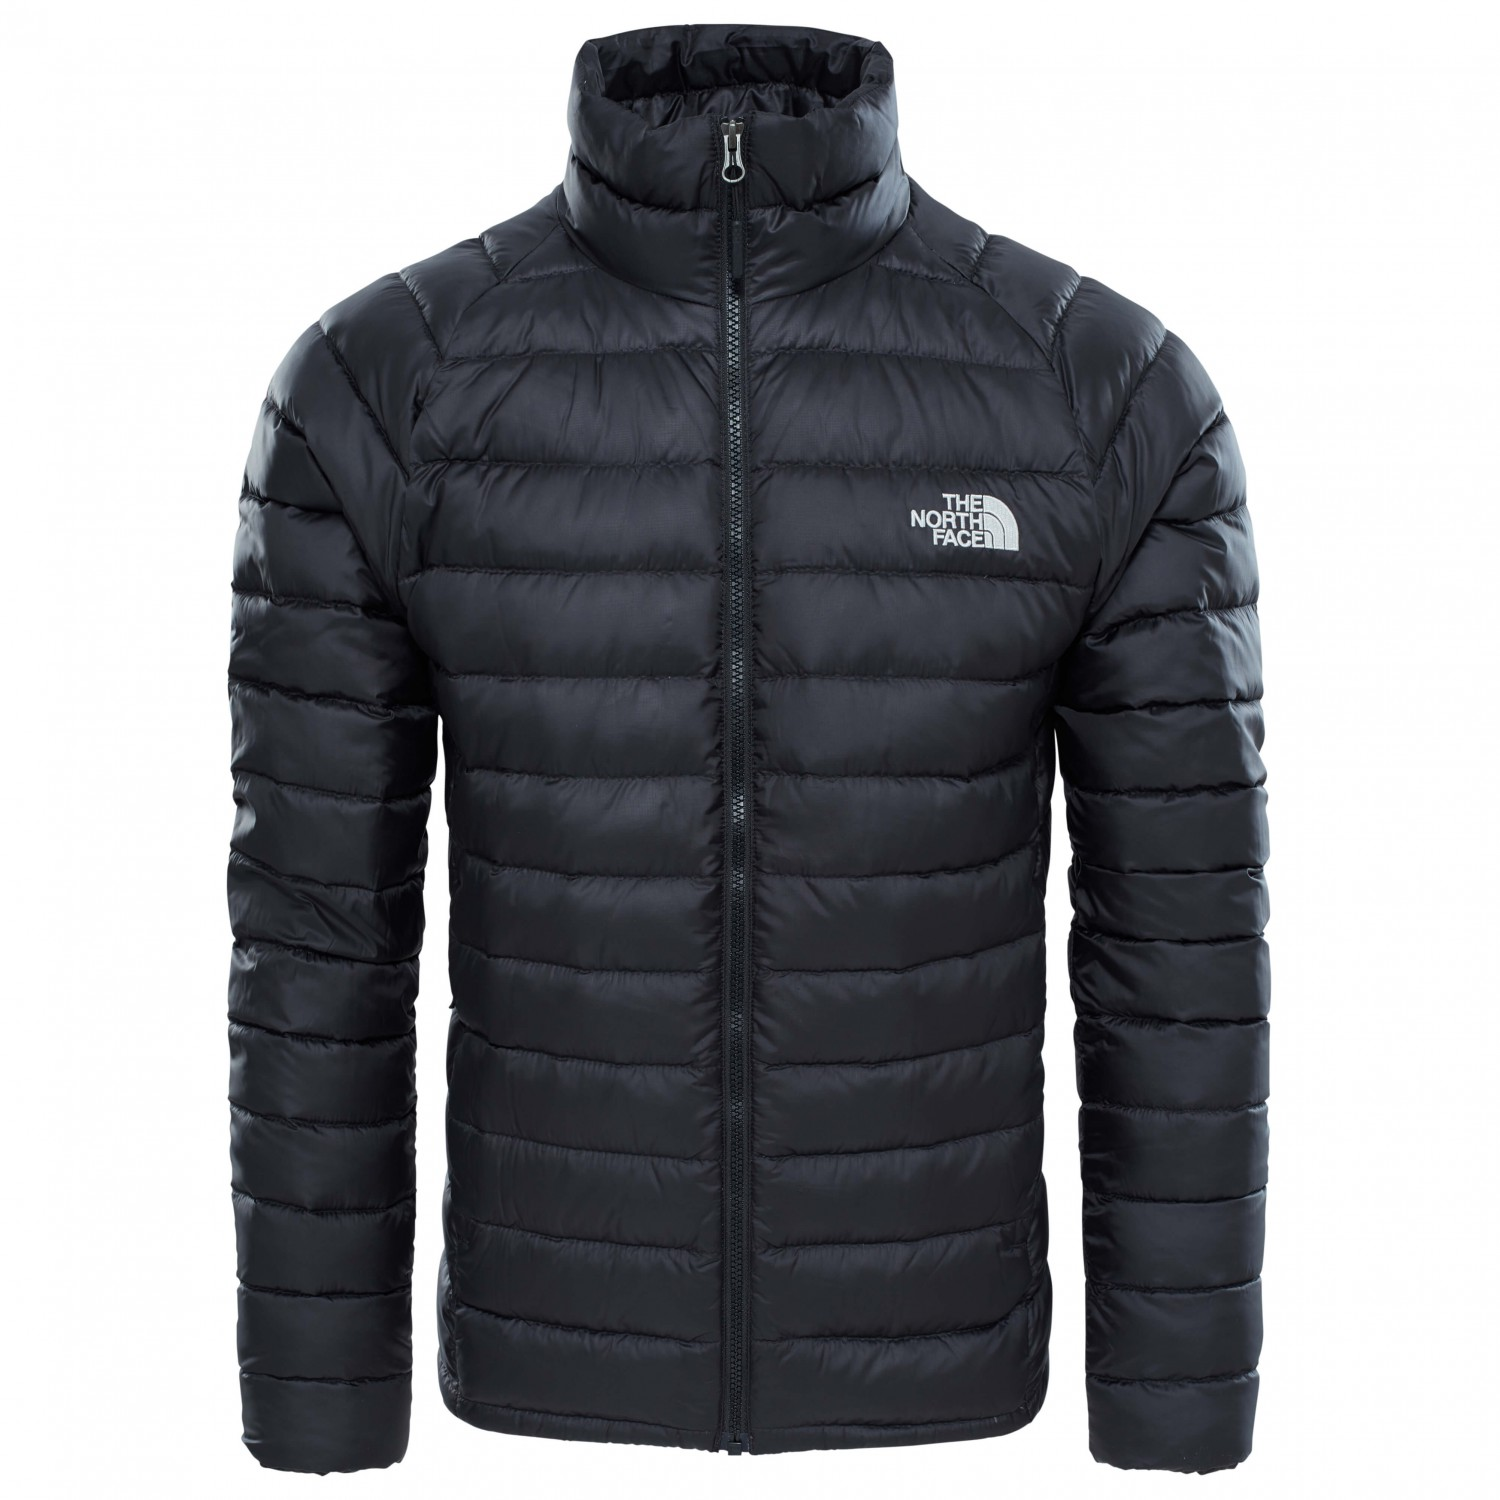 the north face trevail jacket doudoune homme livraison. Black Bedroom Furniture Sets. Home Design Ideas